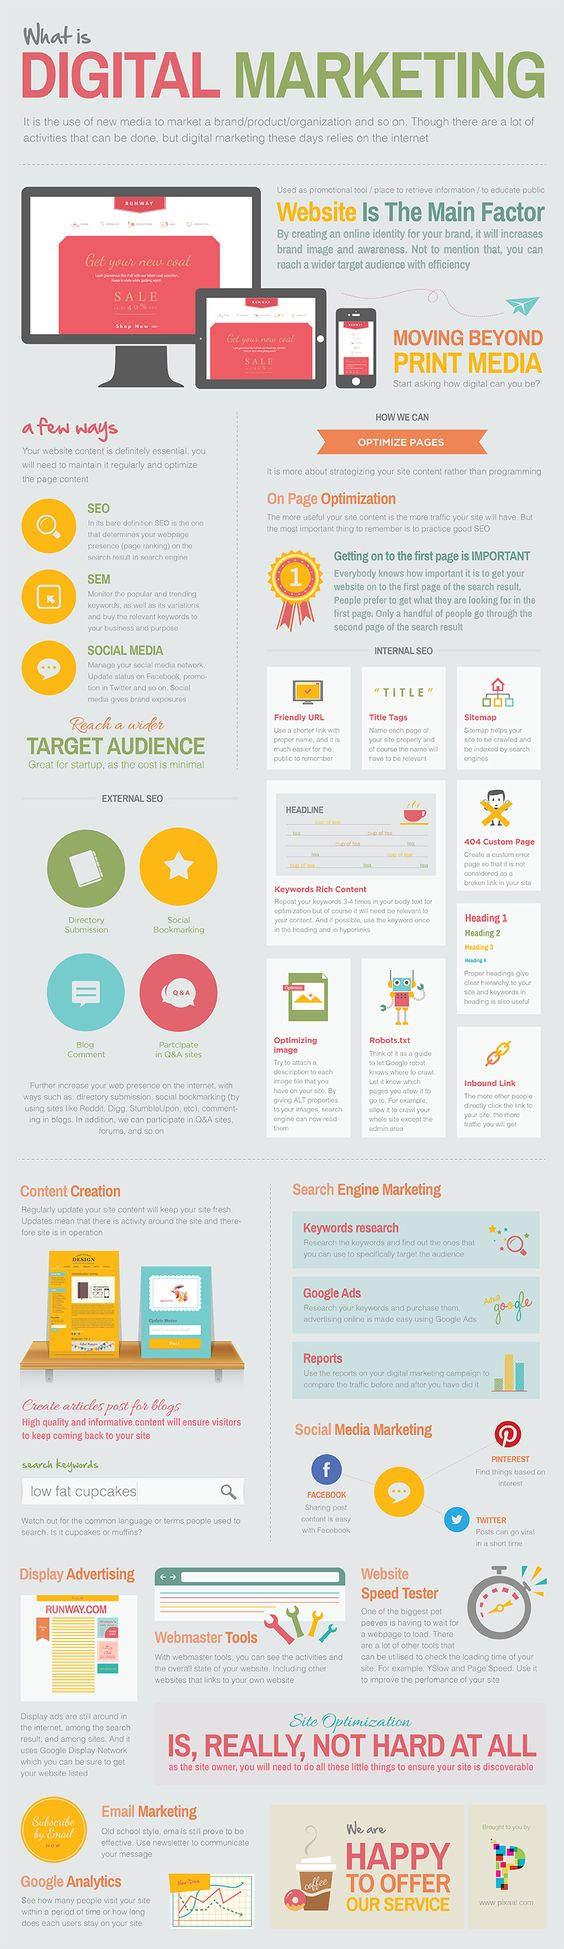 Informative Guide to Digital Marketing: What is Digital Marketing? #digitalmarketing #informativeguide #9dotstrategies #infographic